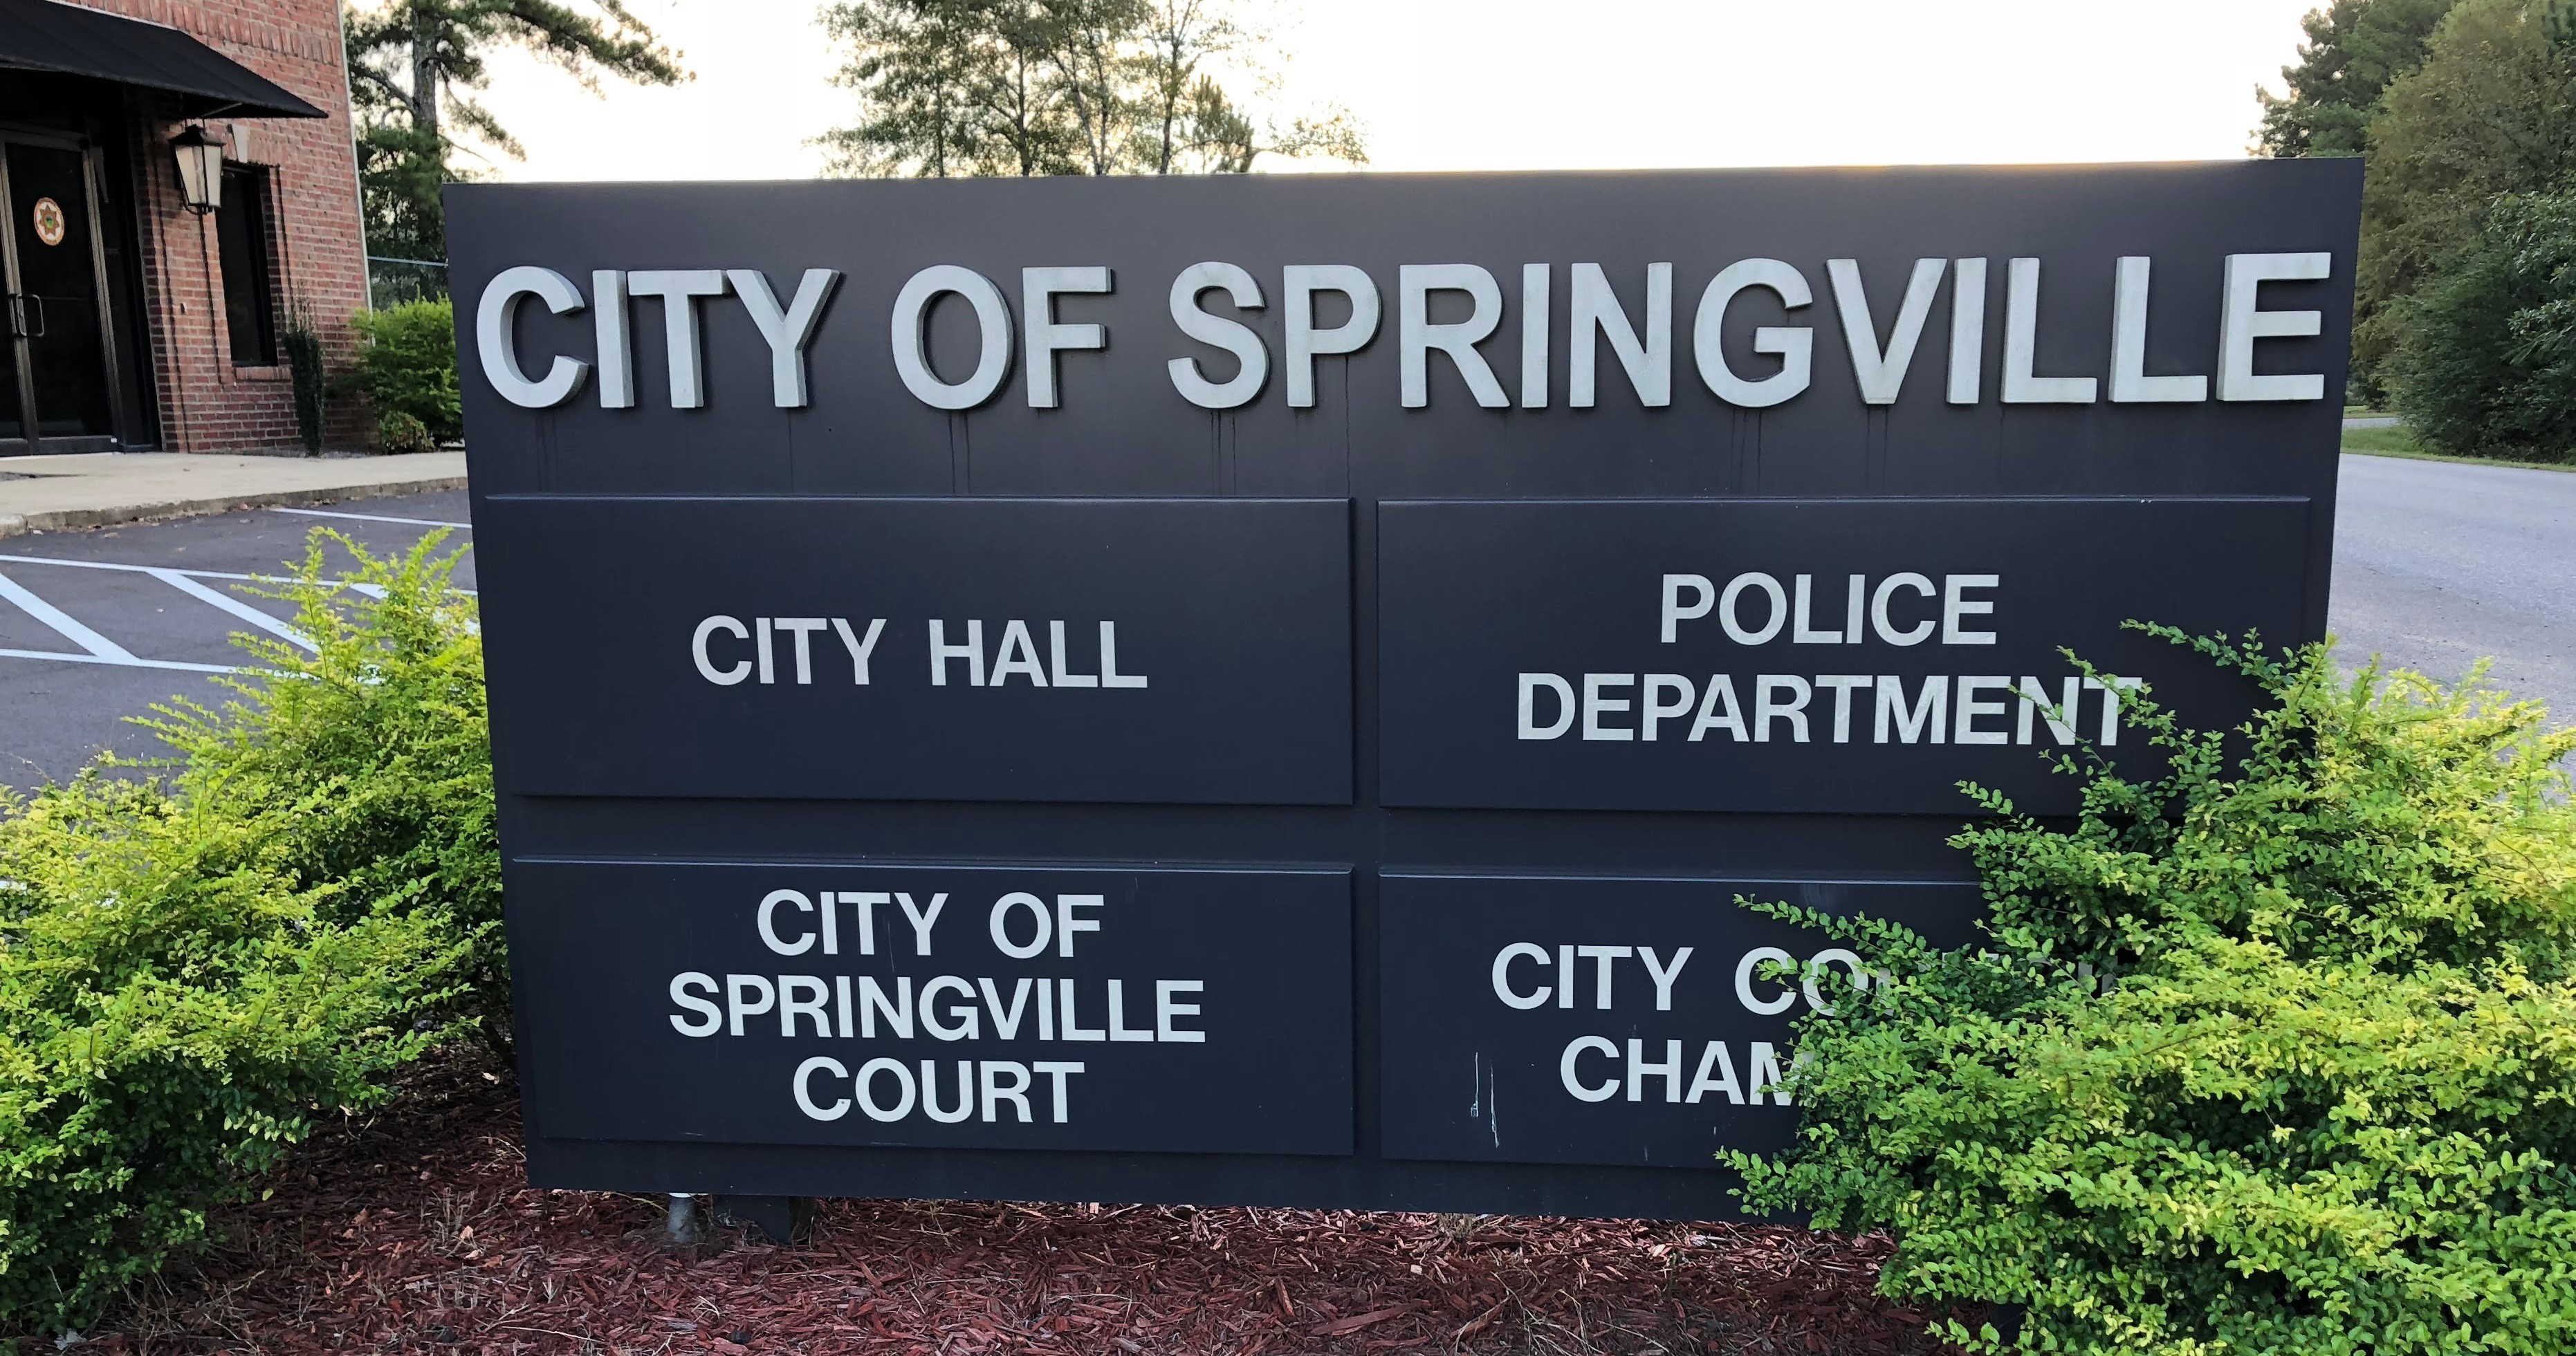 Springville City Hall is located at 160 Walker Dr.